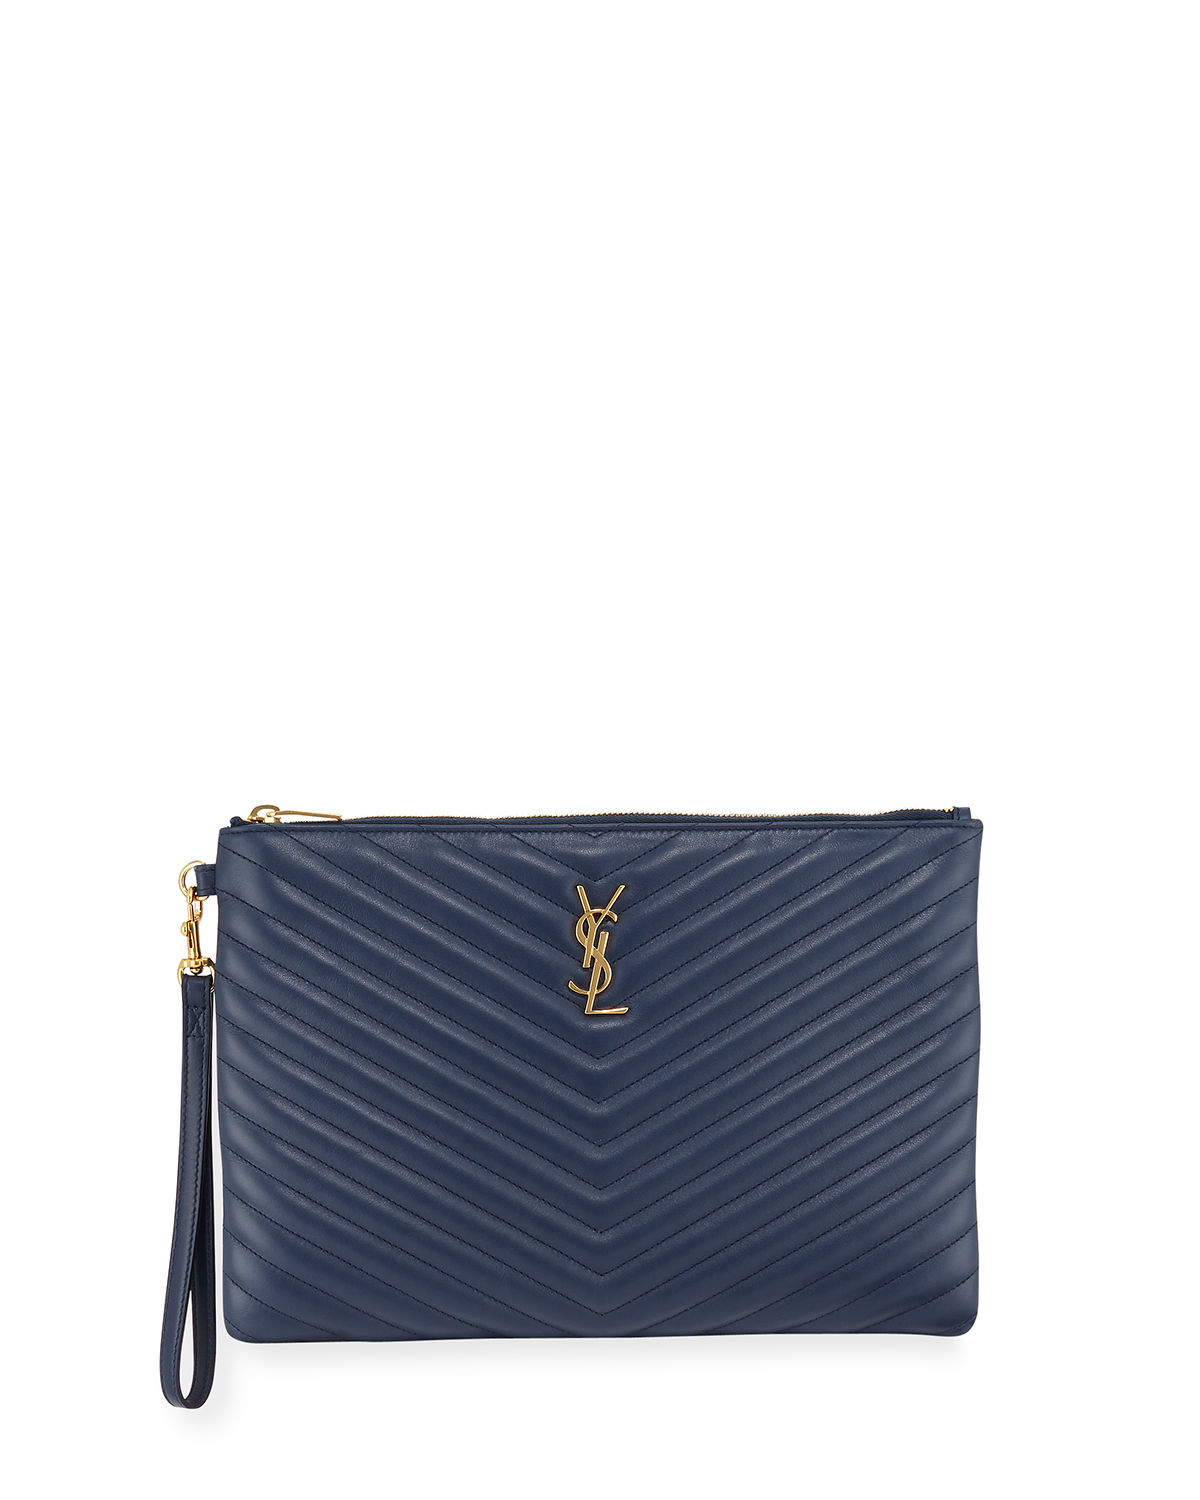 622cd54342a4 Saint Laurent Monogram Ysl Quilted Wristlet Pouch Bag In Denim Brut ...